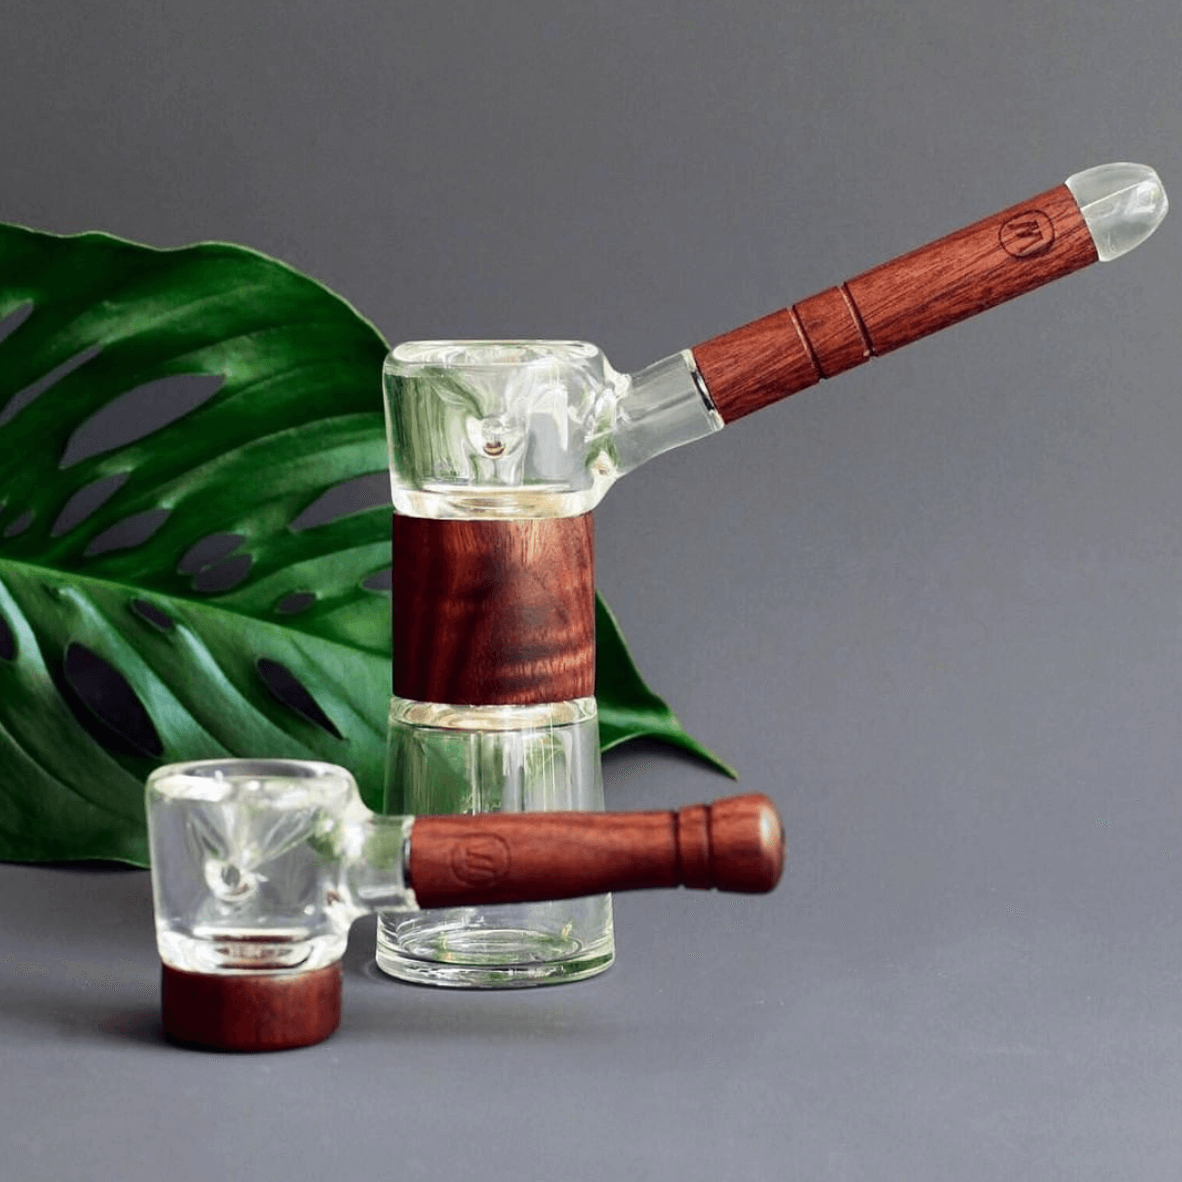 Marley Natural - Glass Spoon Pipe w/ Wood Accents